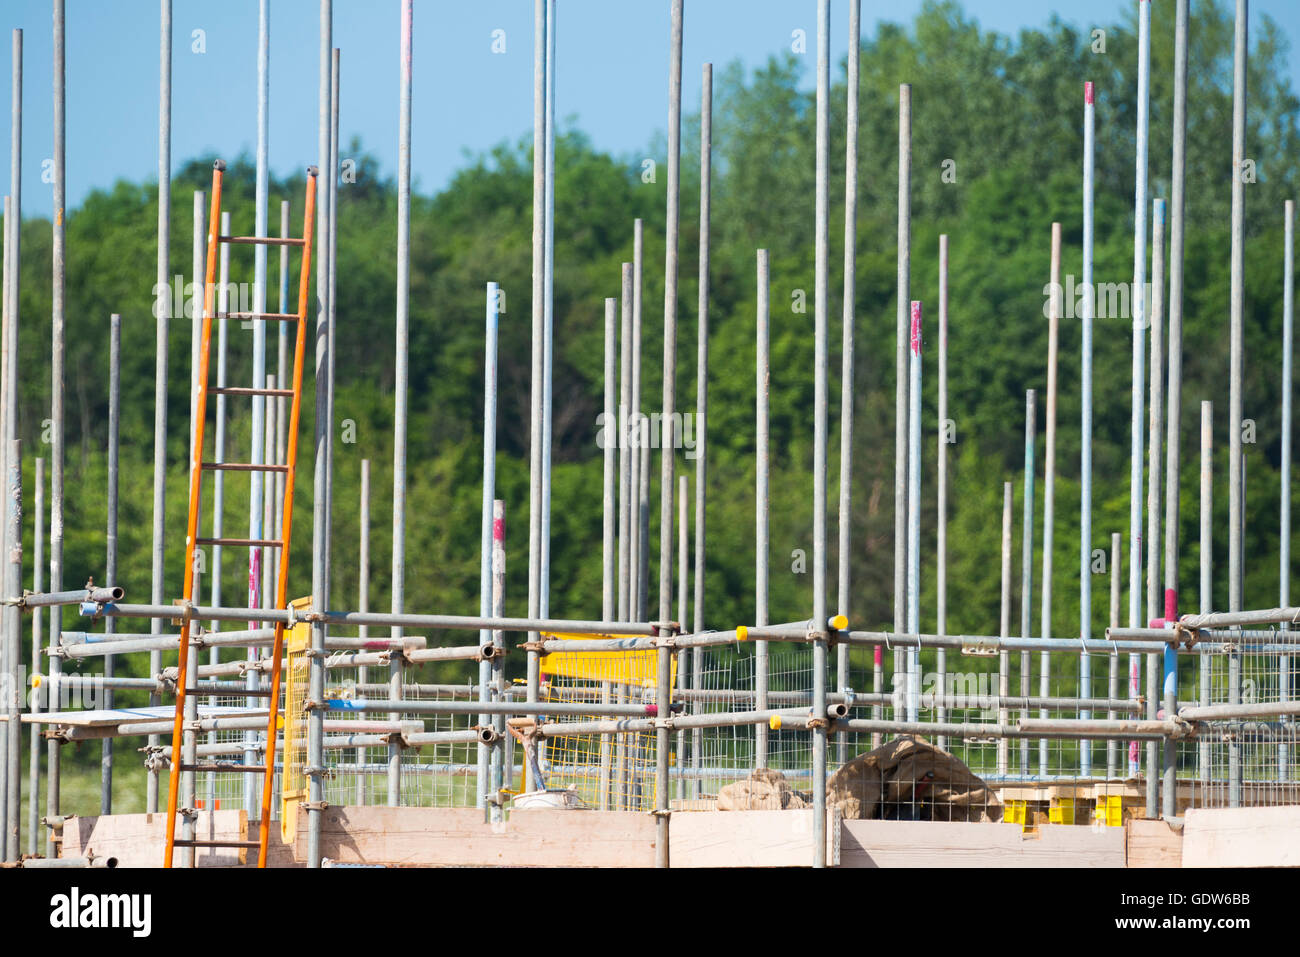 Scaffolding poles on a house construction site in Shifnal, Shropshire, England, UK. - Stock Image